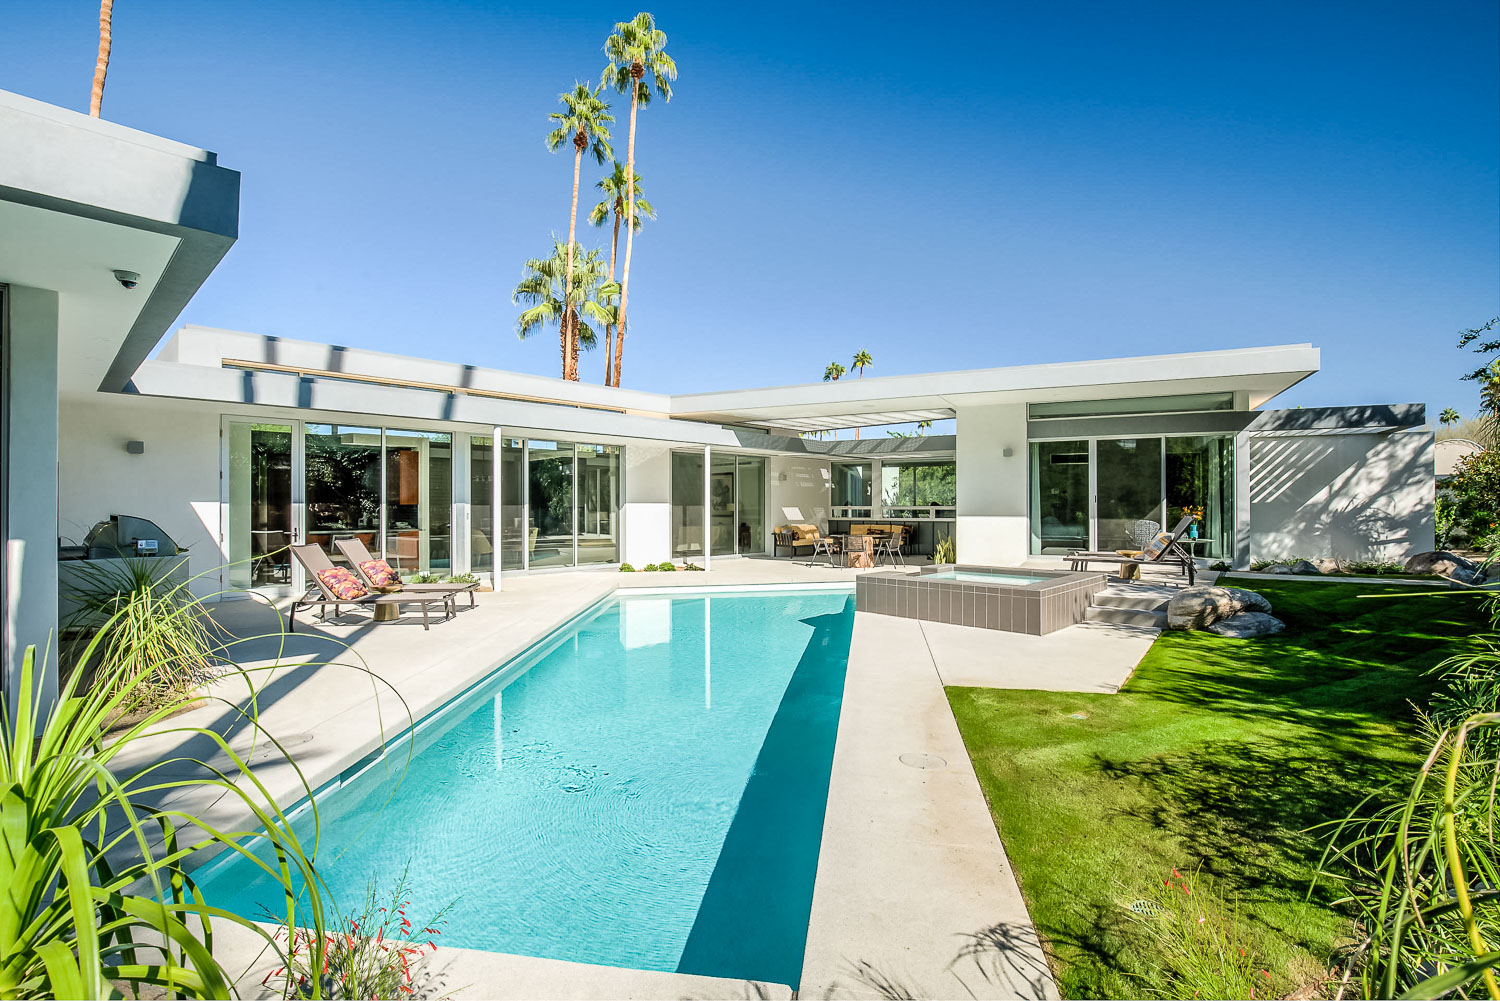 Stay at these Palm Springs luxury villas during Coachella Festival and be cool